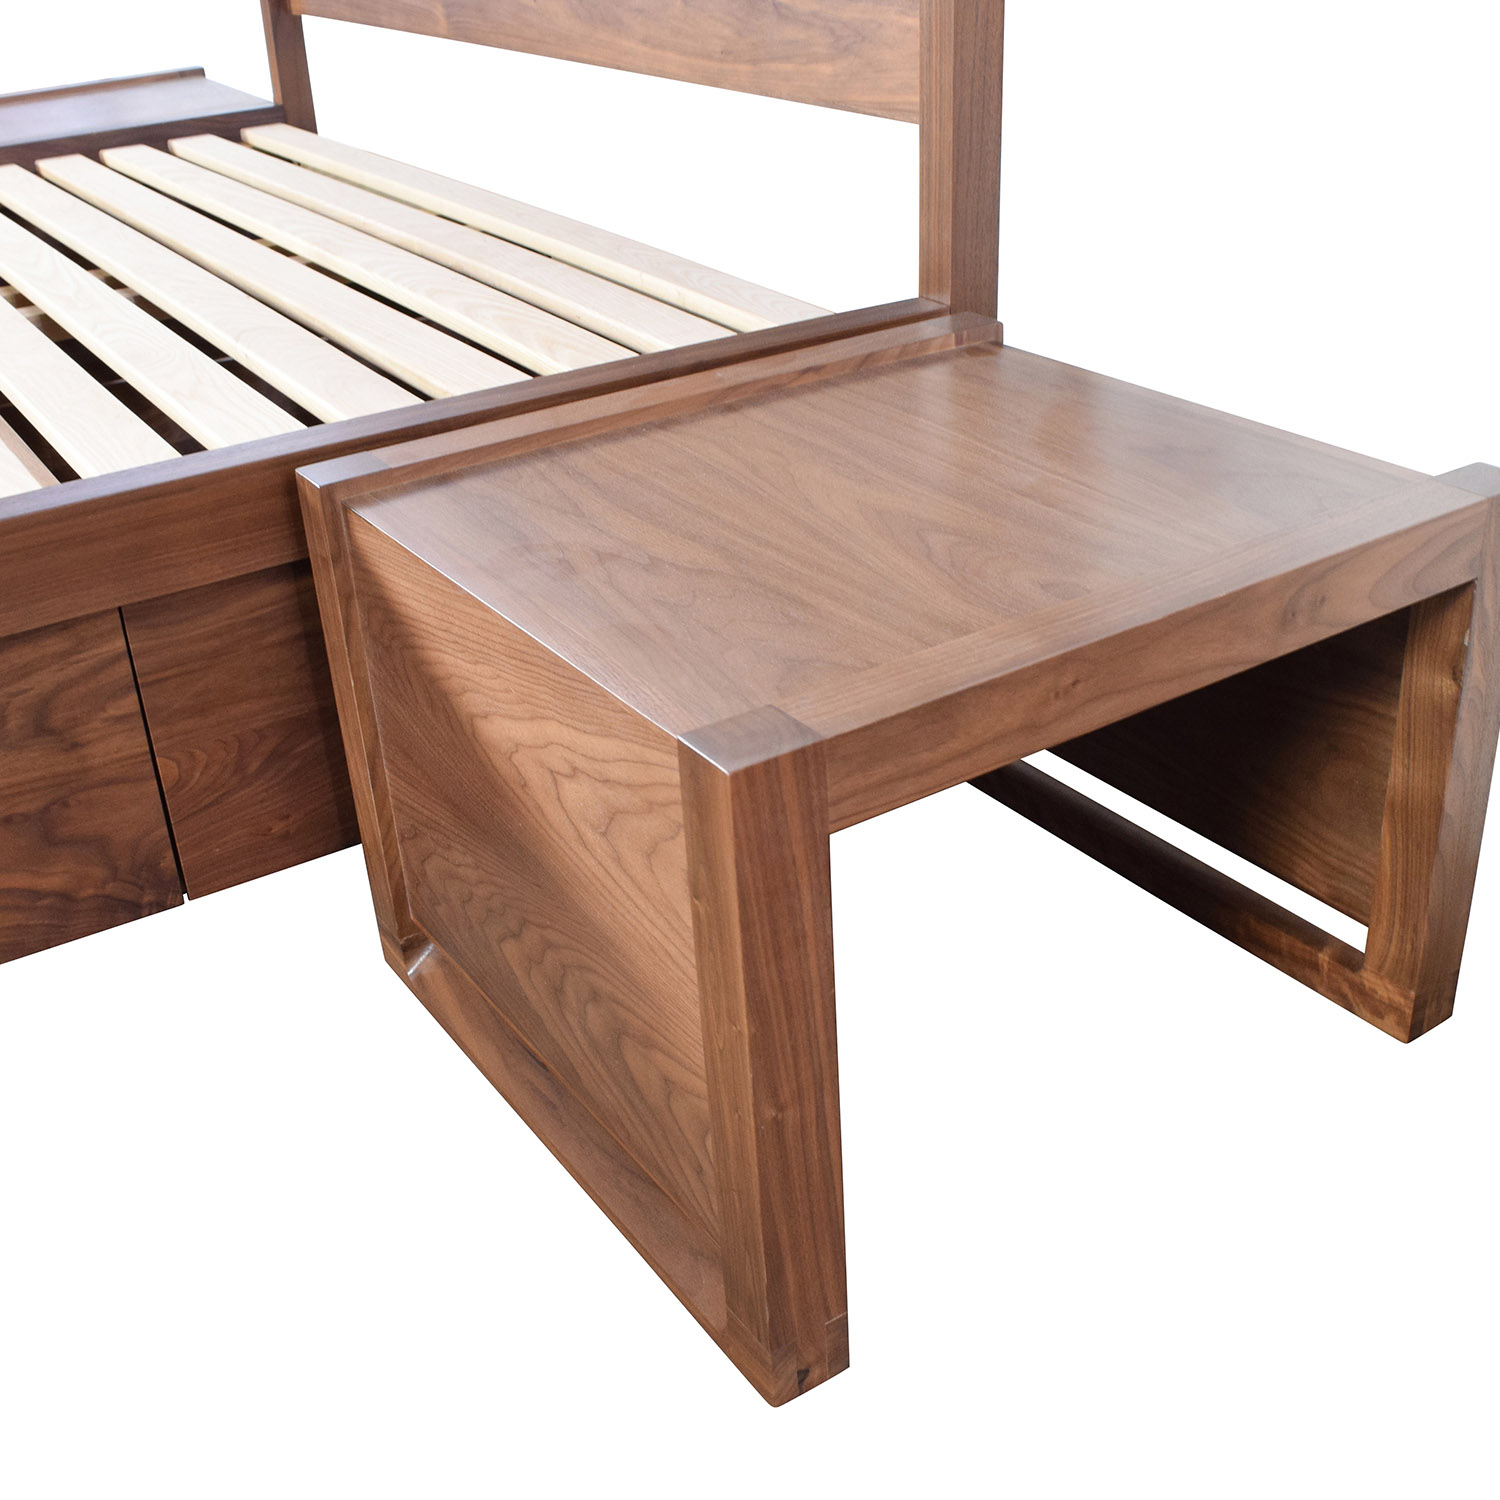 ... Design Within Reach Design Within Reach Queen Bed Frame With End Tables  Discount ...